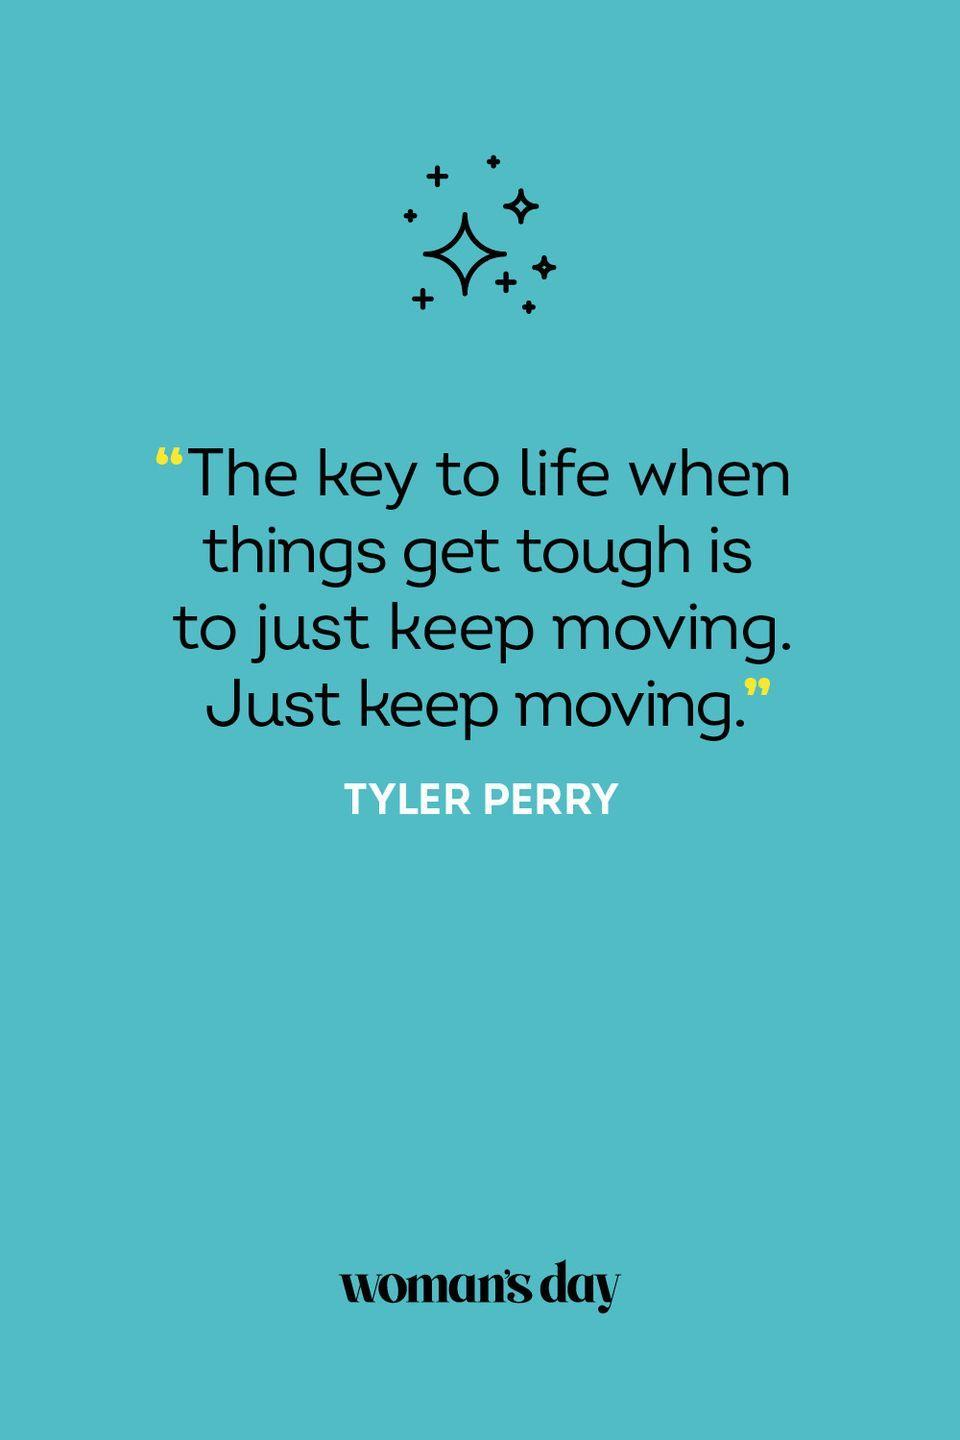 <p>The key to life when things get tough is to just keep moving. Just keep moving.</p>